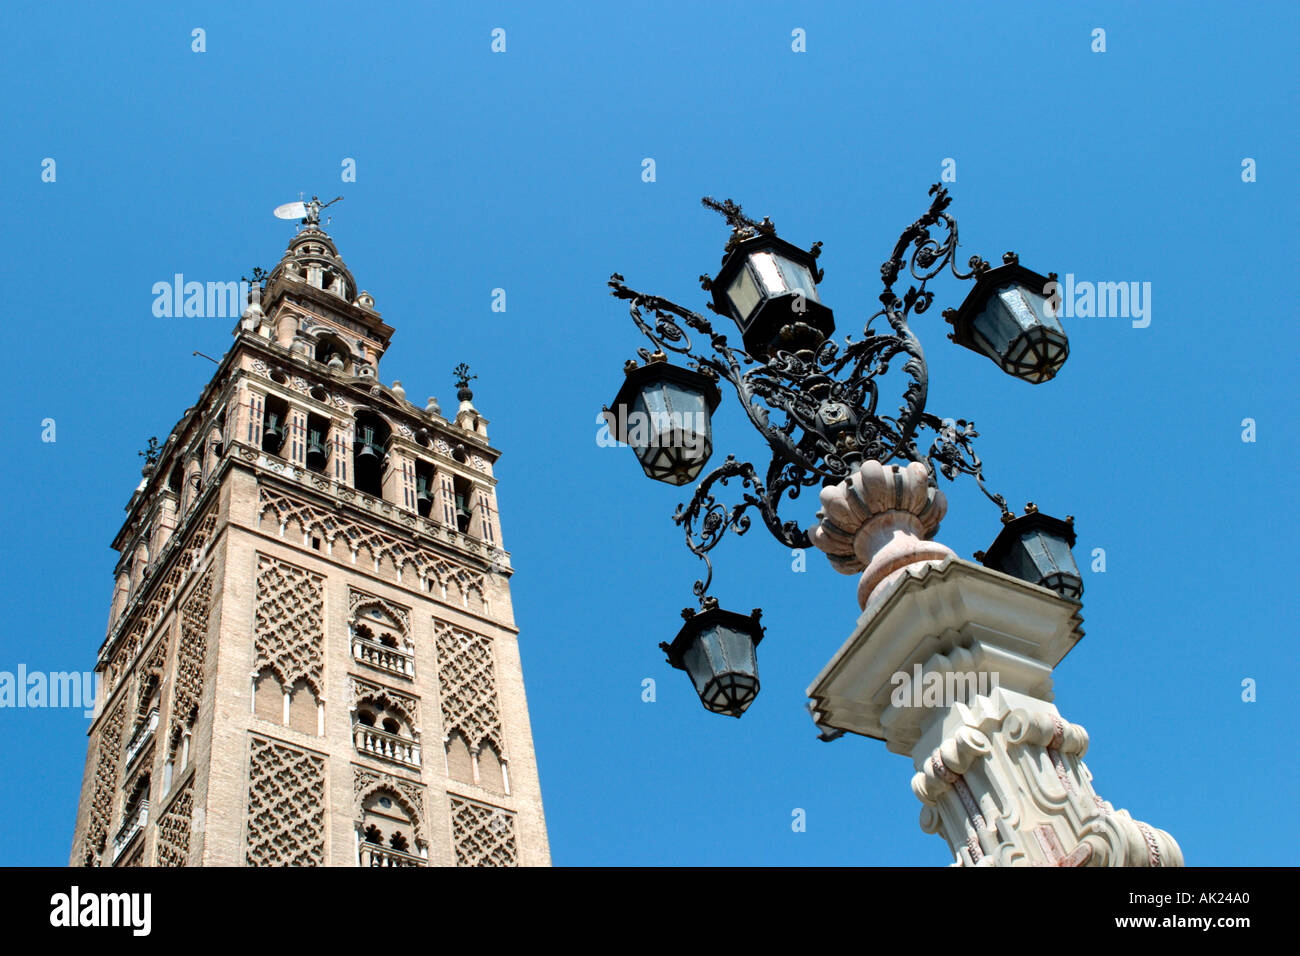 La Giralda tower above the Cathedral in Seville, Andalucia, Spain - Stock Image